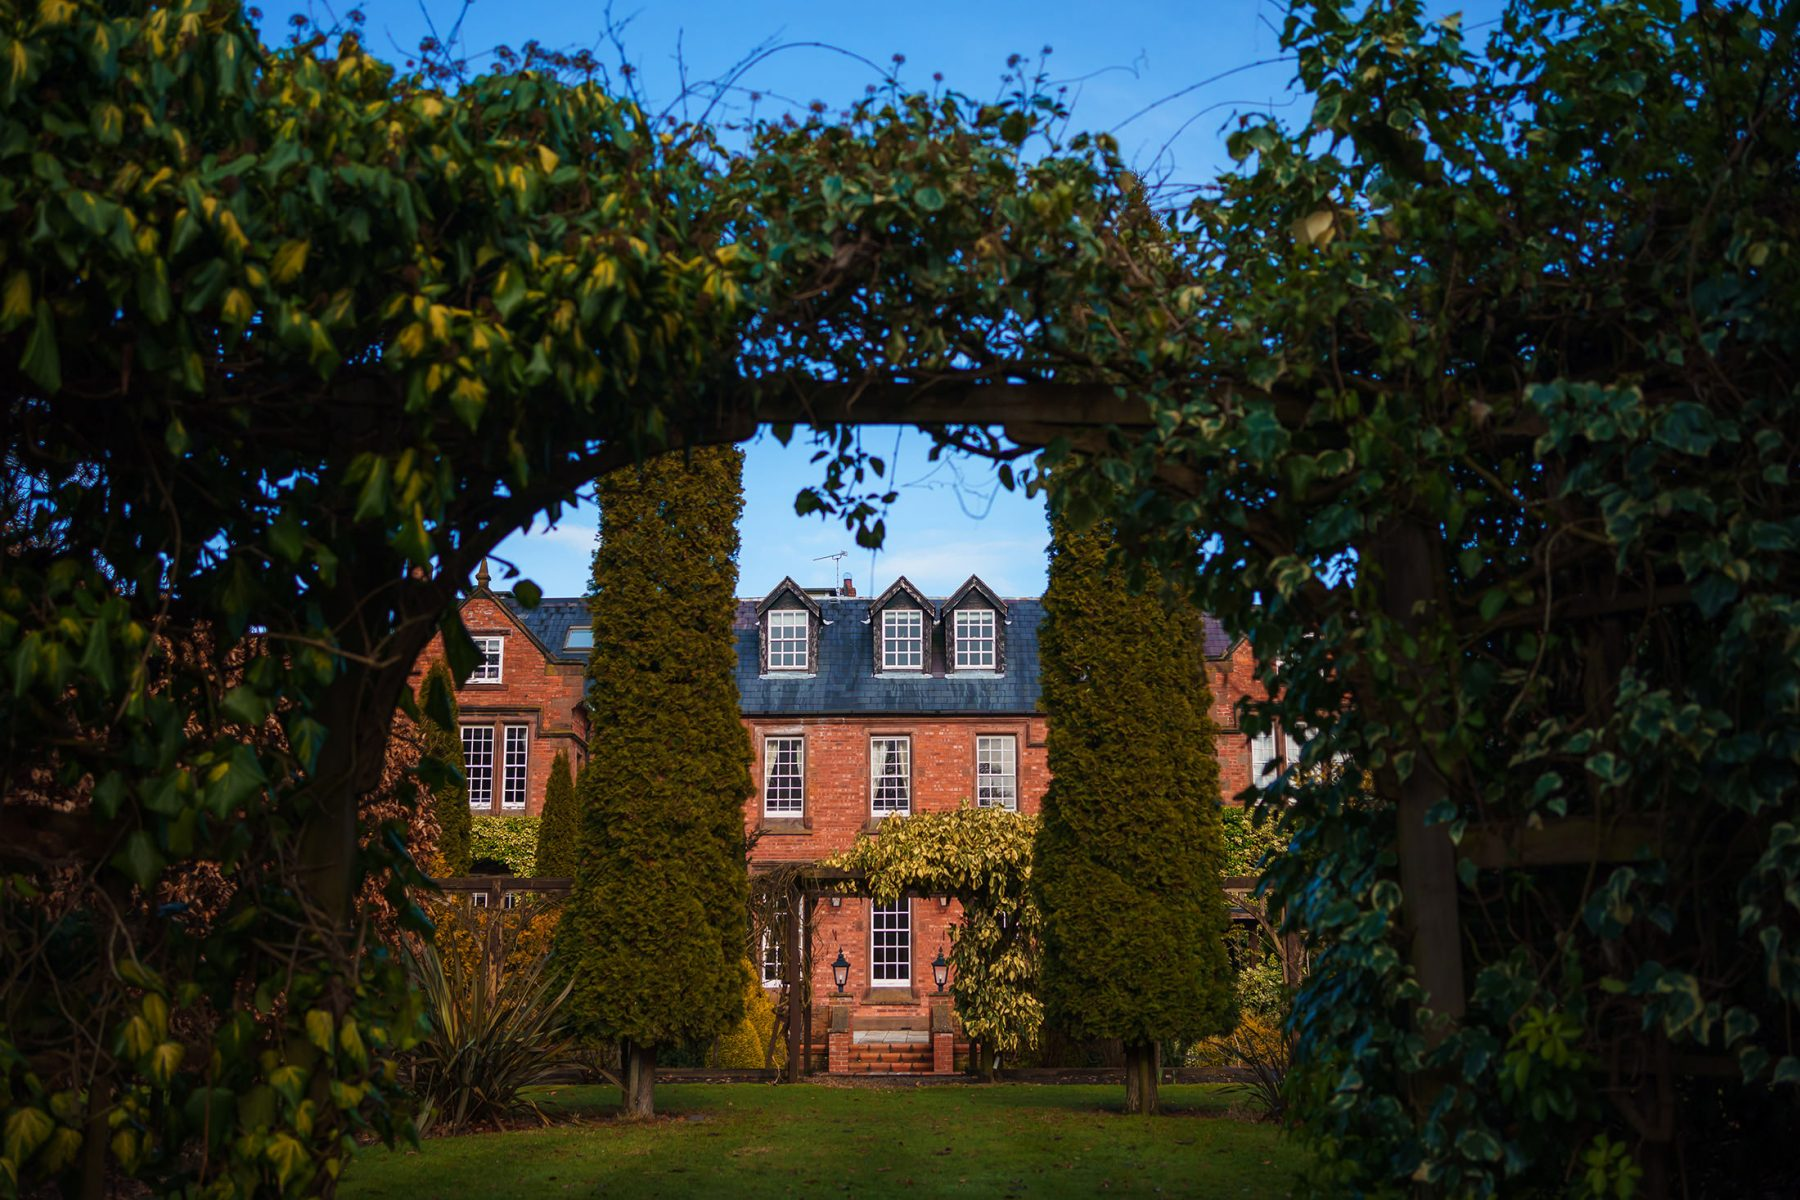 A photograph main building through an archway in the gardens at Nunsmere Hall in Cheshire - Country House weddings at Nunsmere Hall